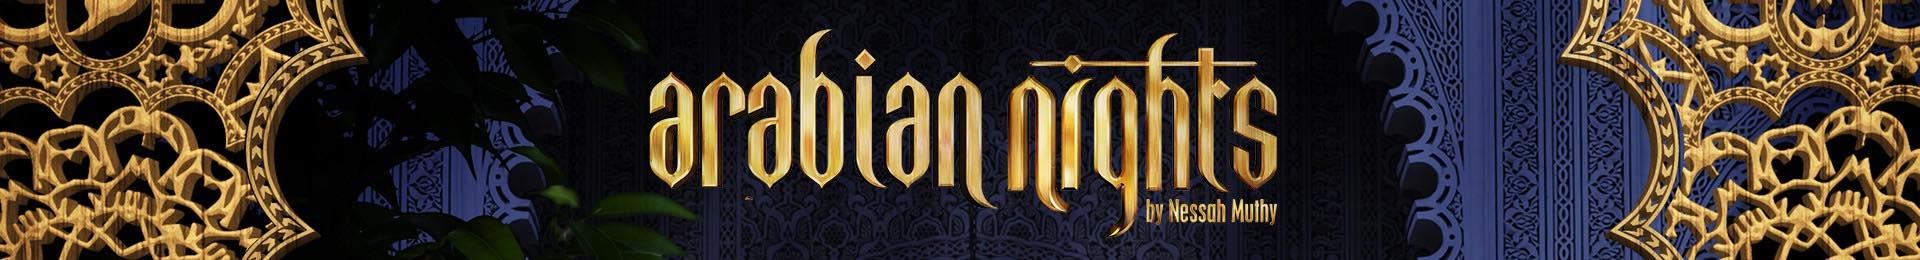 Arabian Nights tickets London Hoton Hall